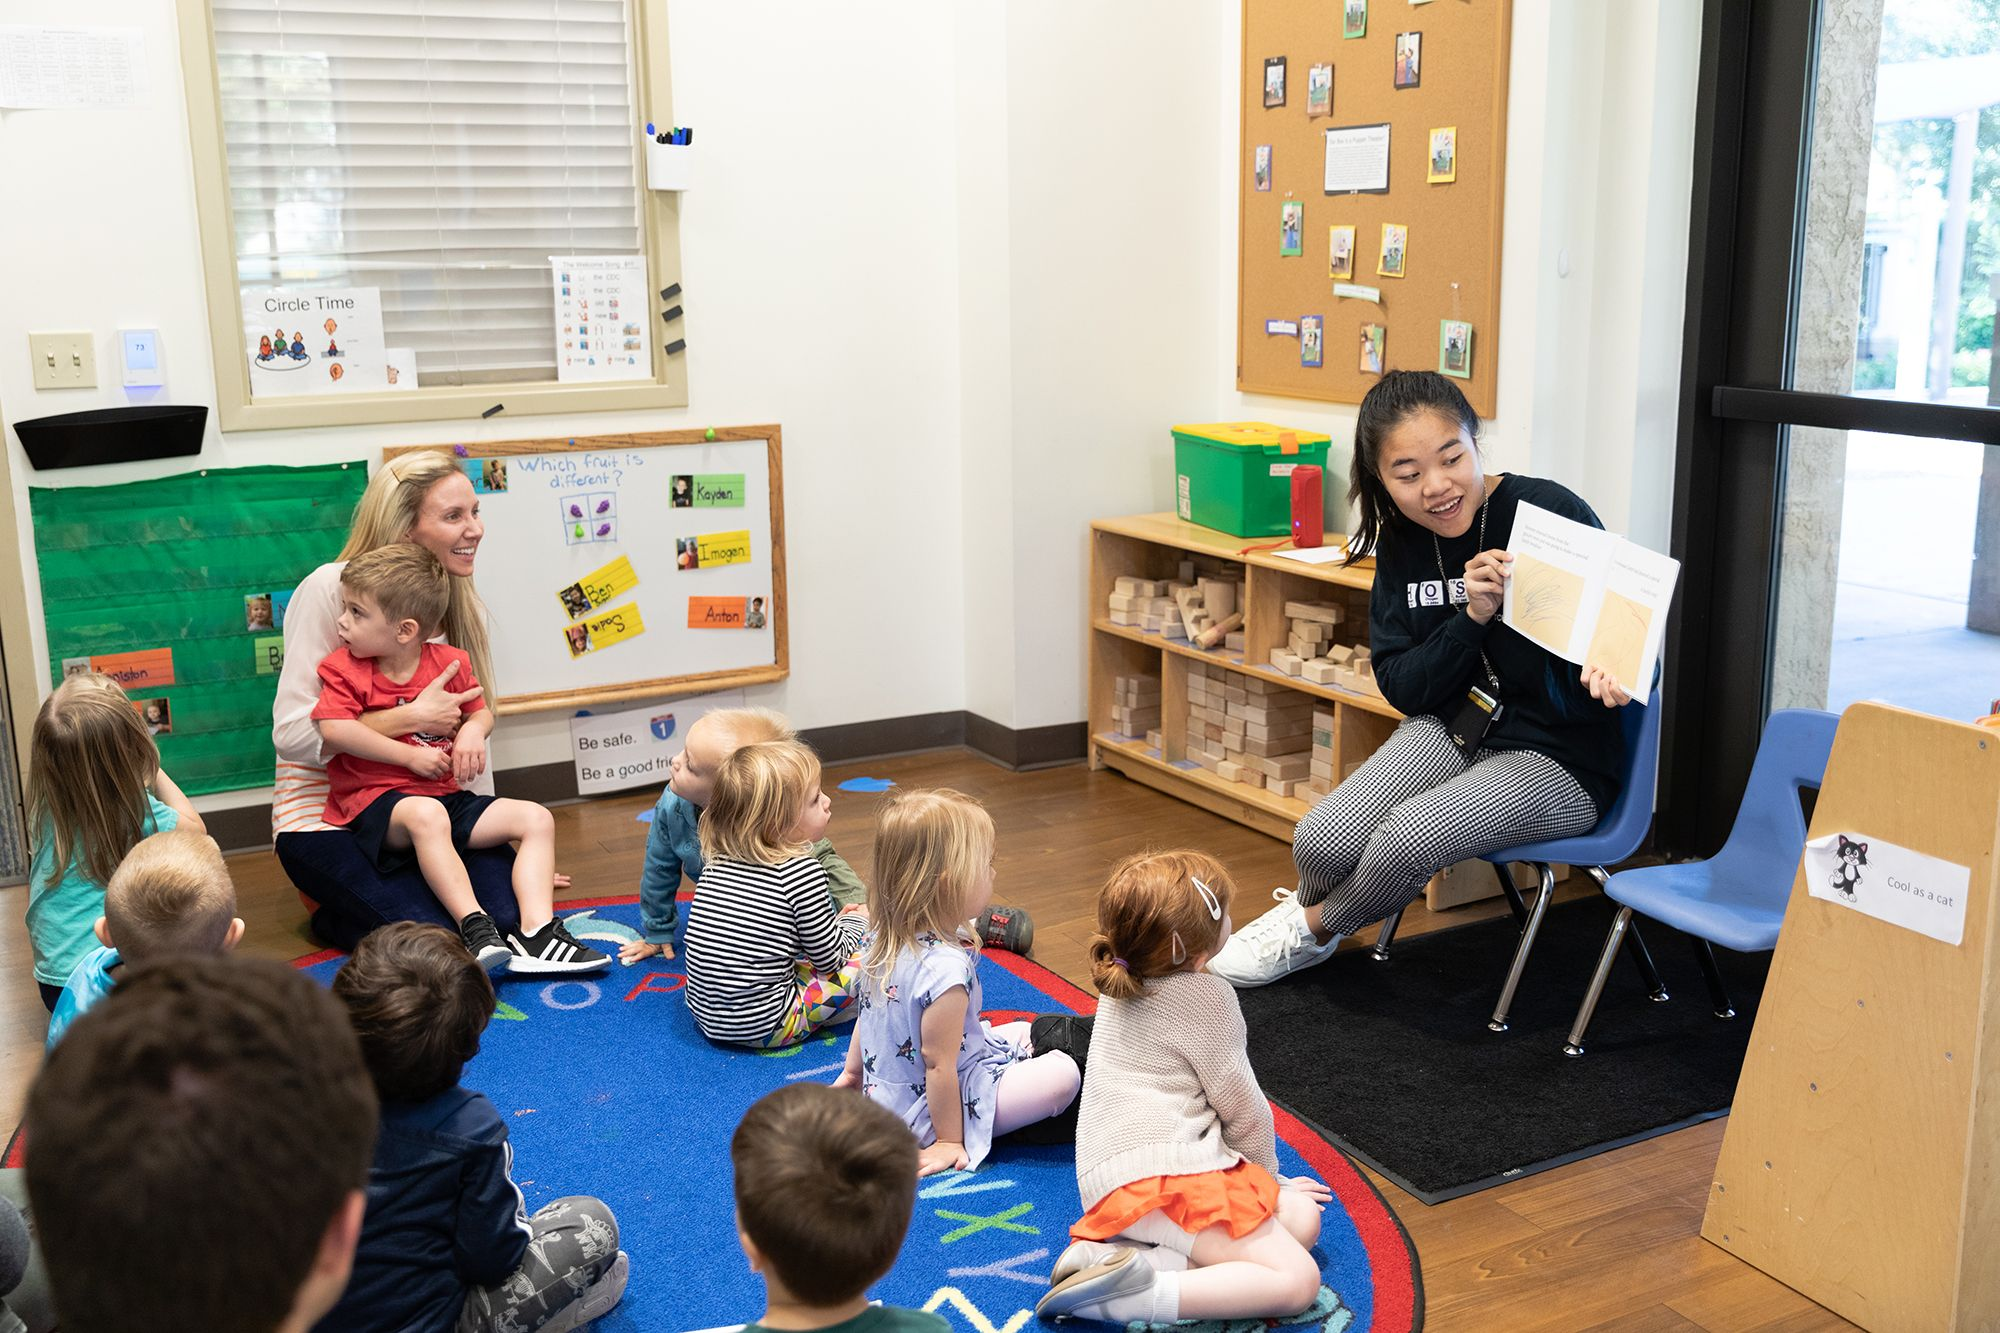 A college student reading to a class of children at the children's development center (CDC).